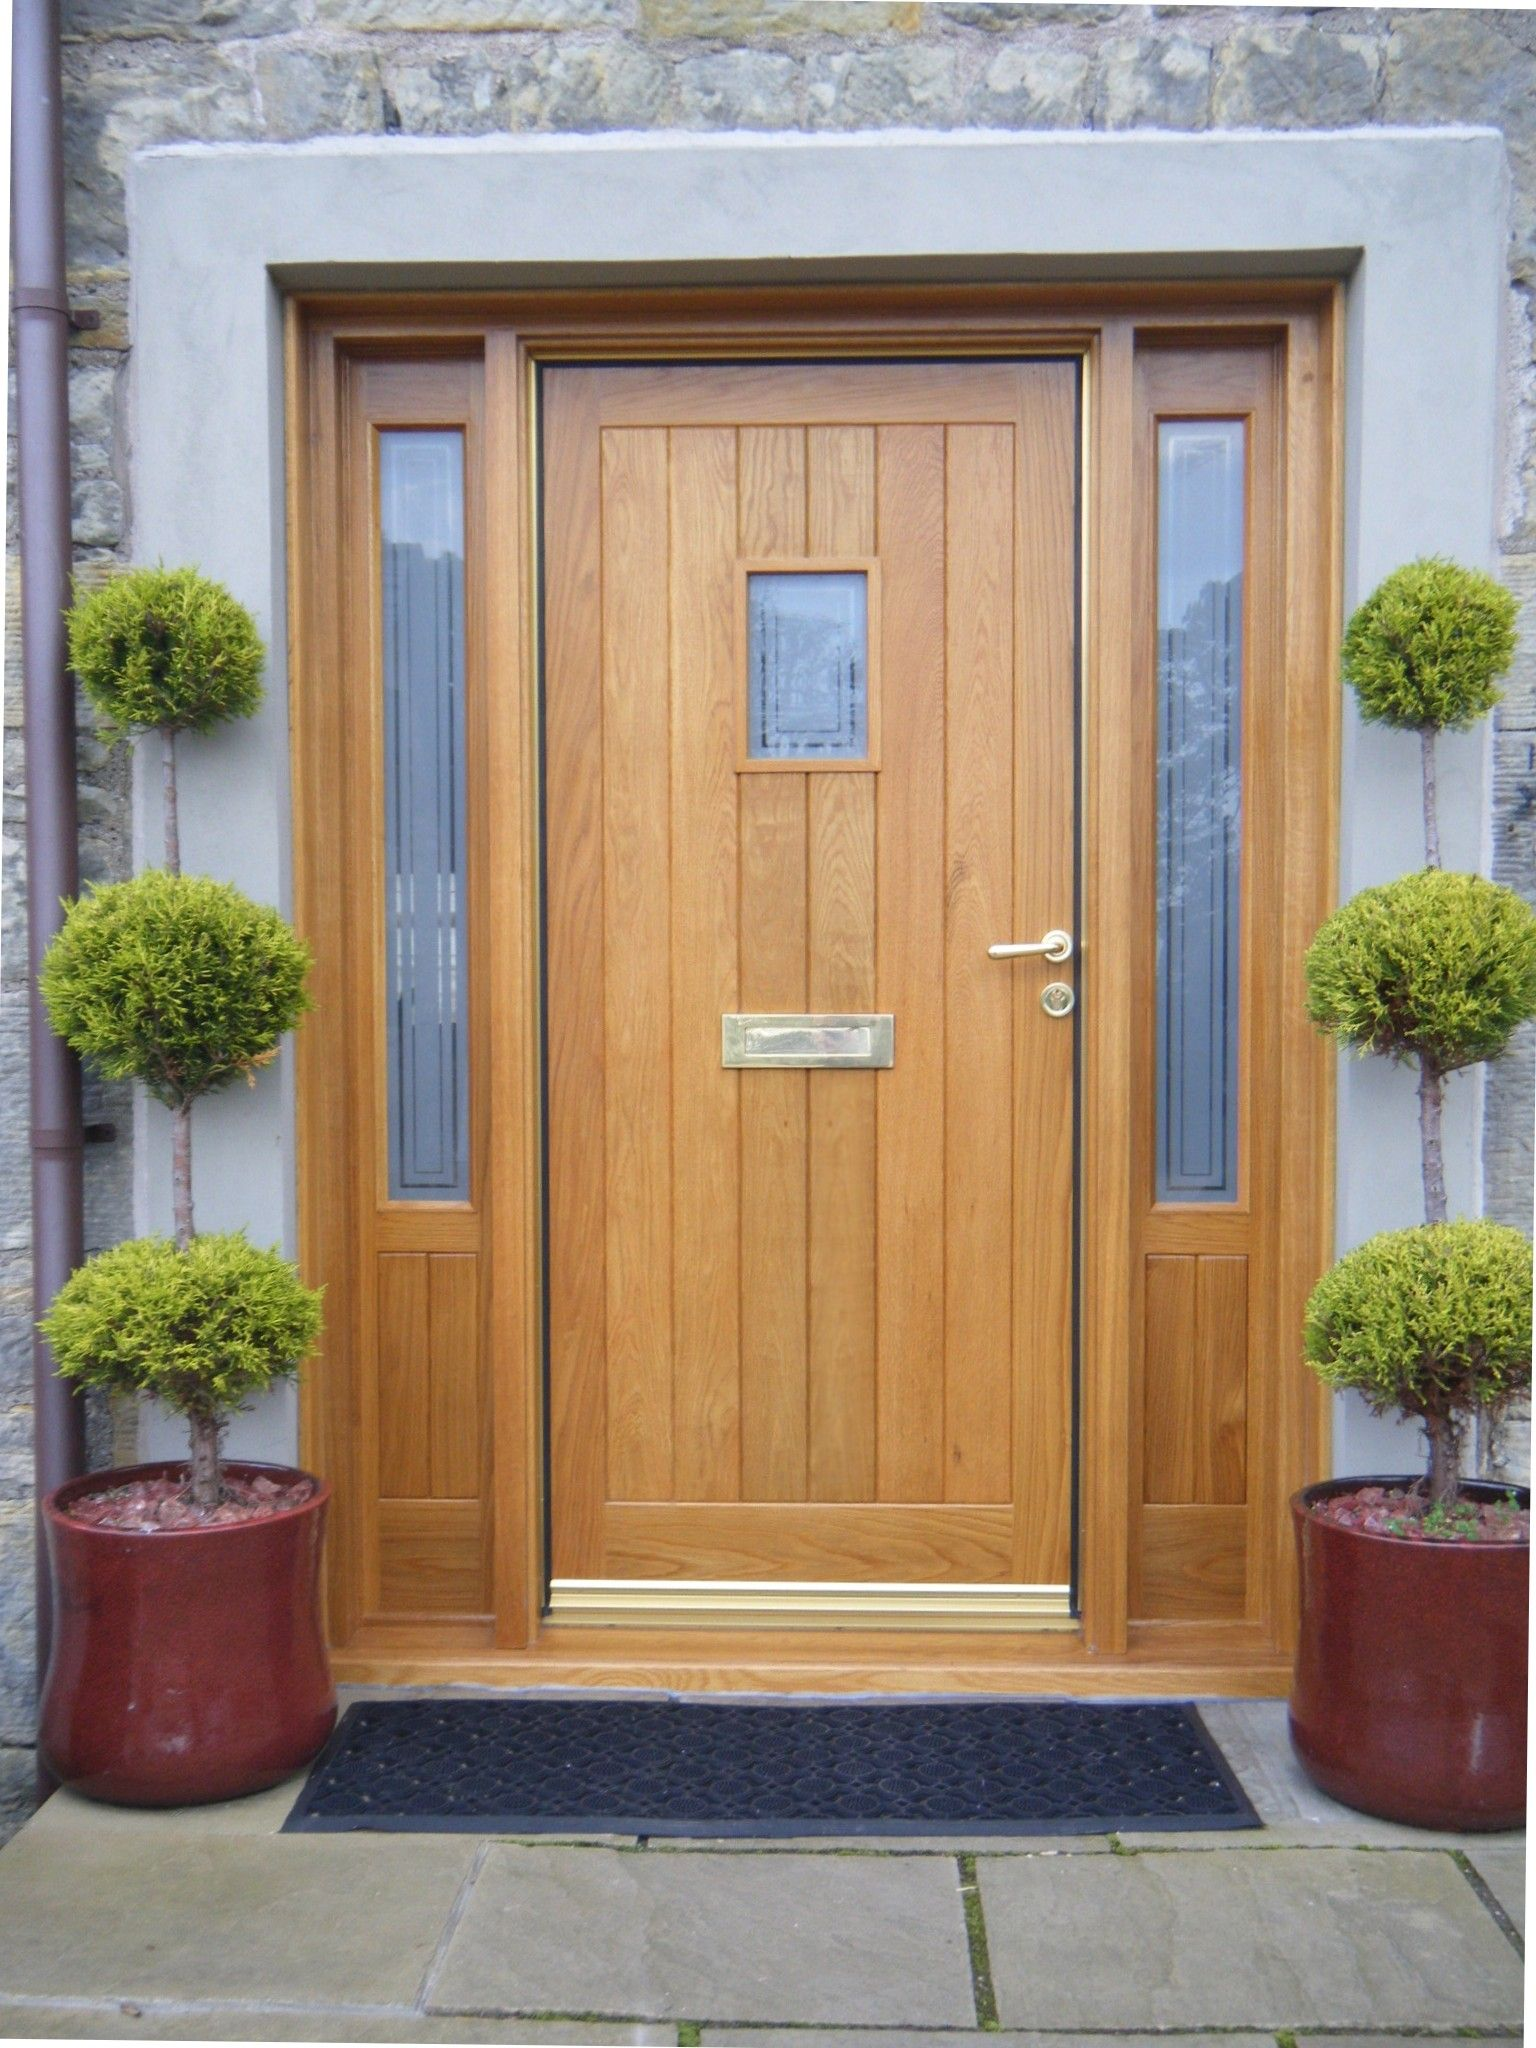 Uk Oak Front Doors  Wooden valiant design com You must take this into consideration and come to a definite